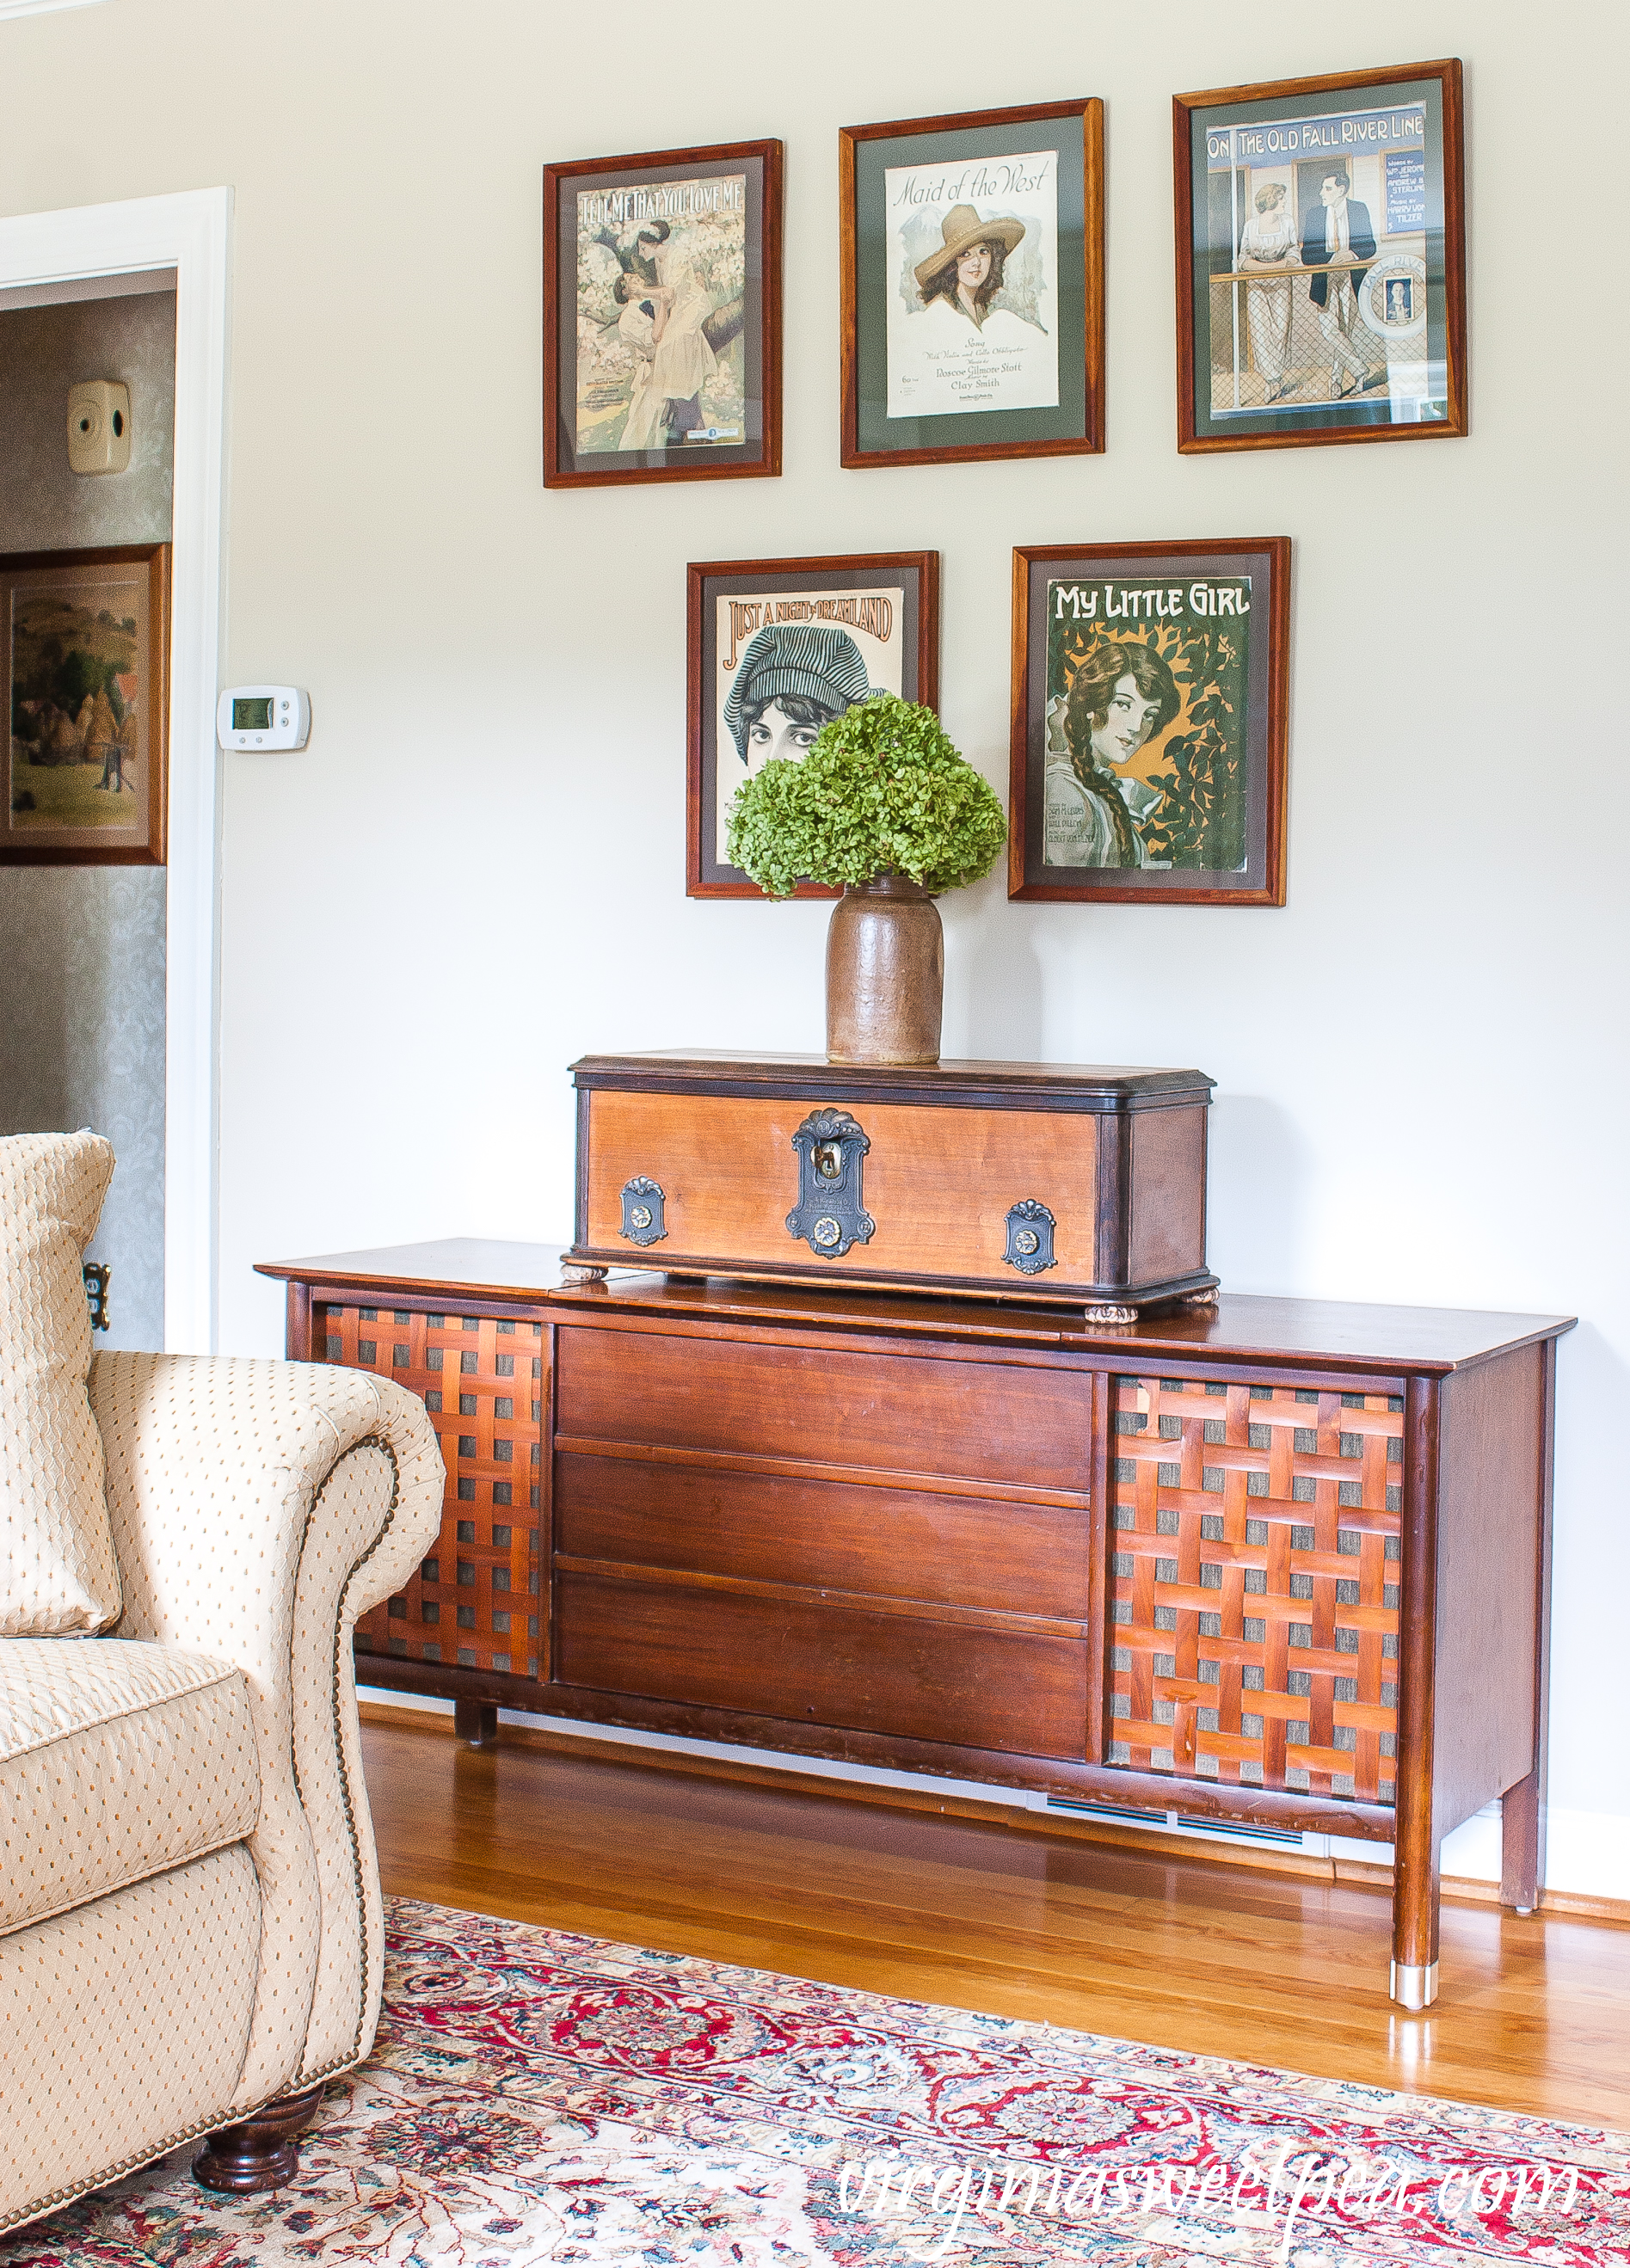 1960's stereo console with an antique radio and collection of WWI sheet music